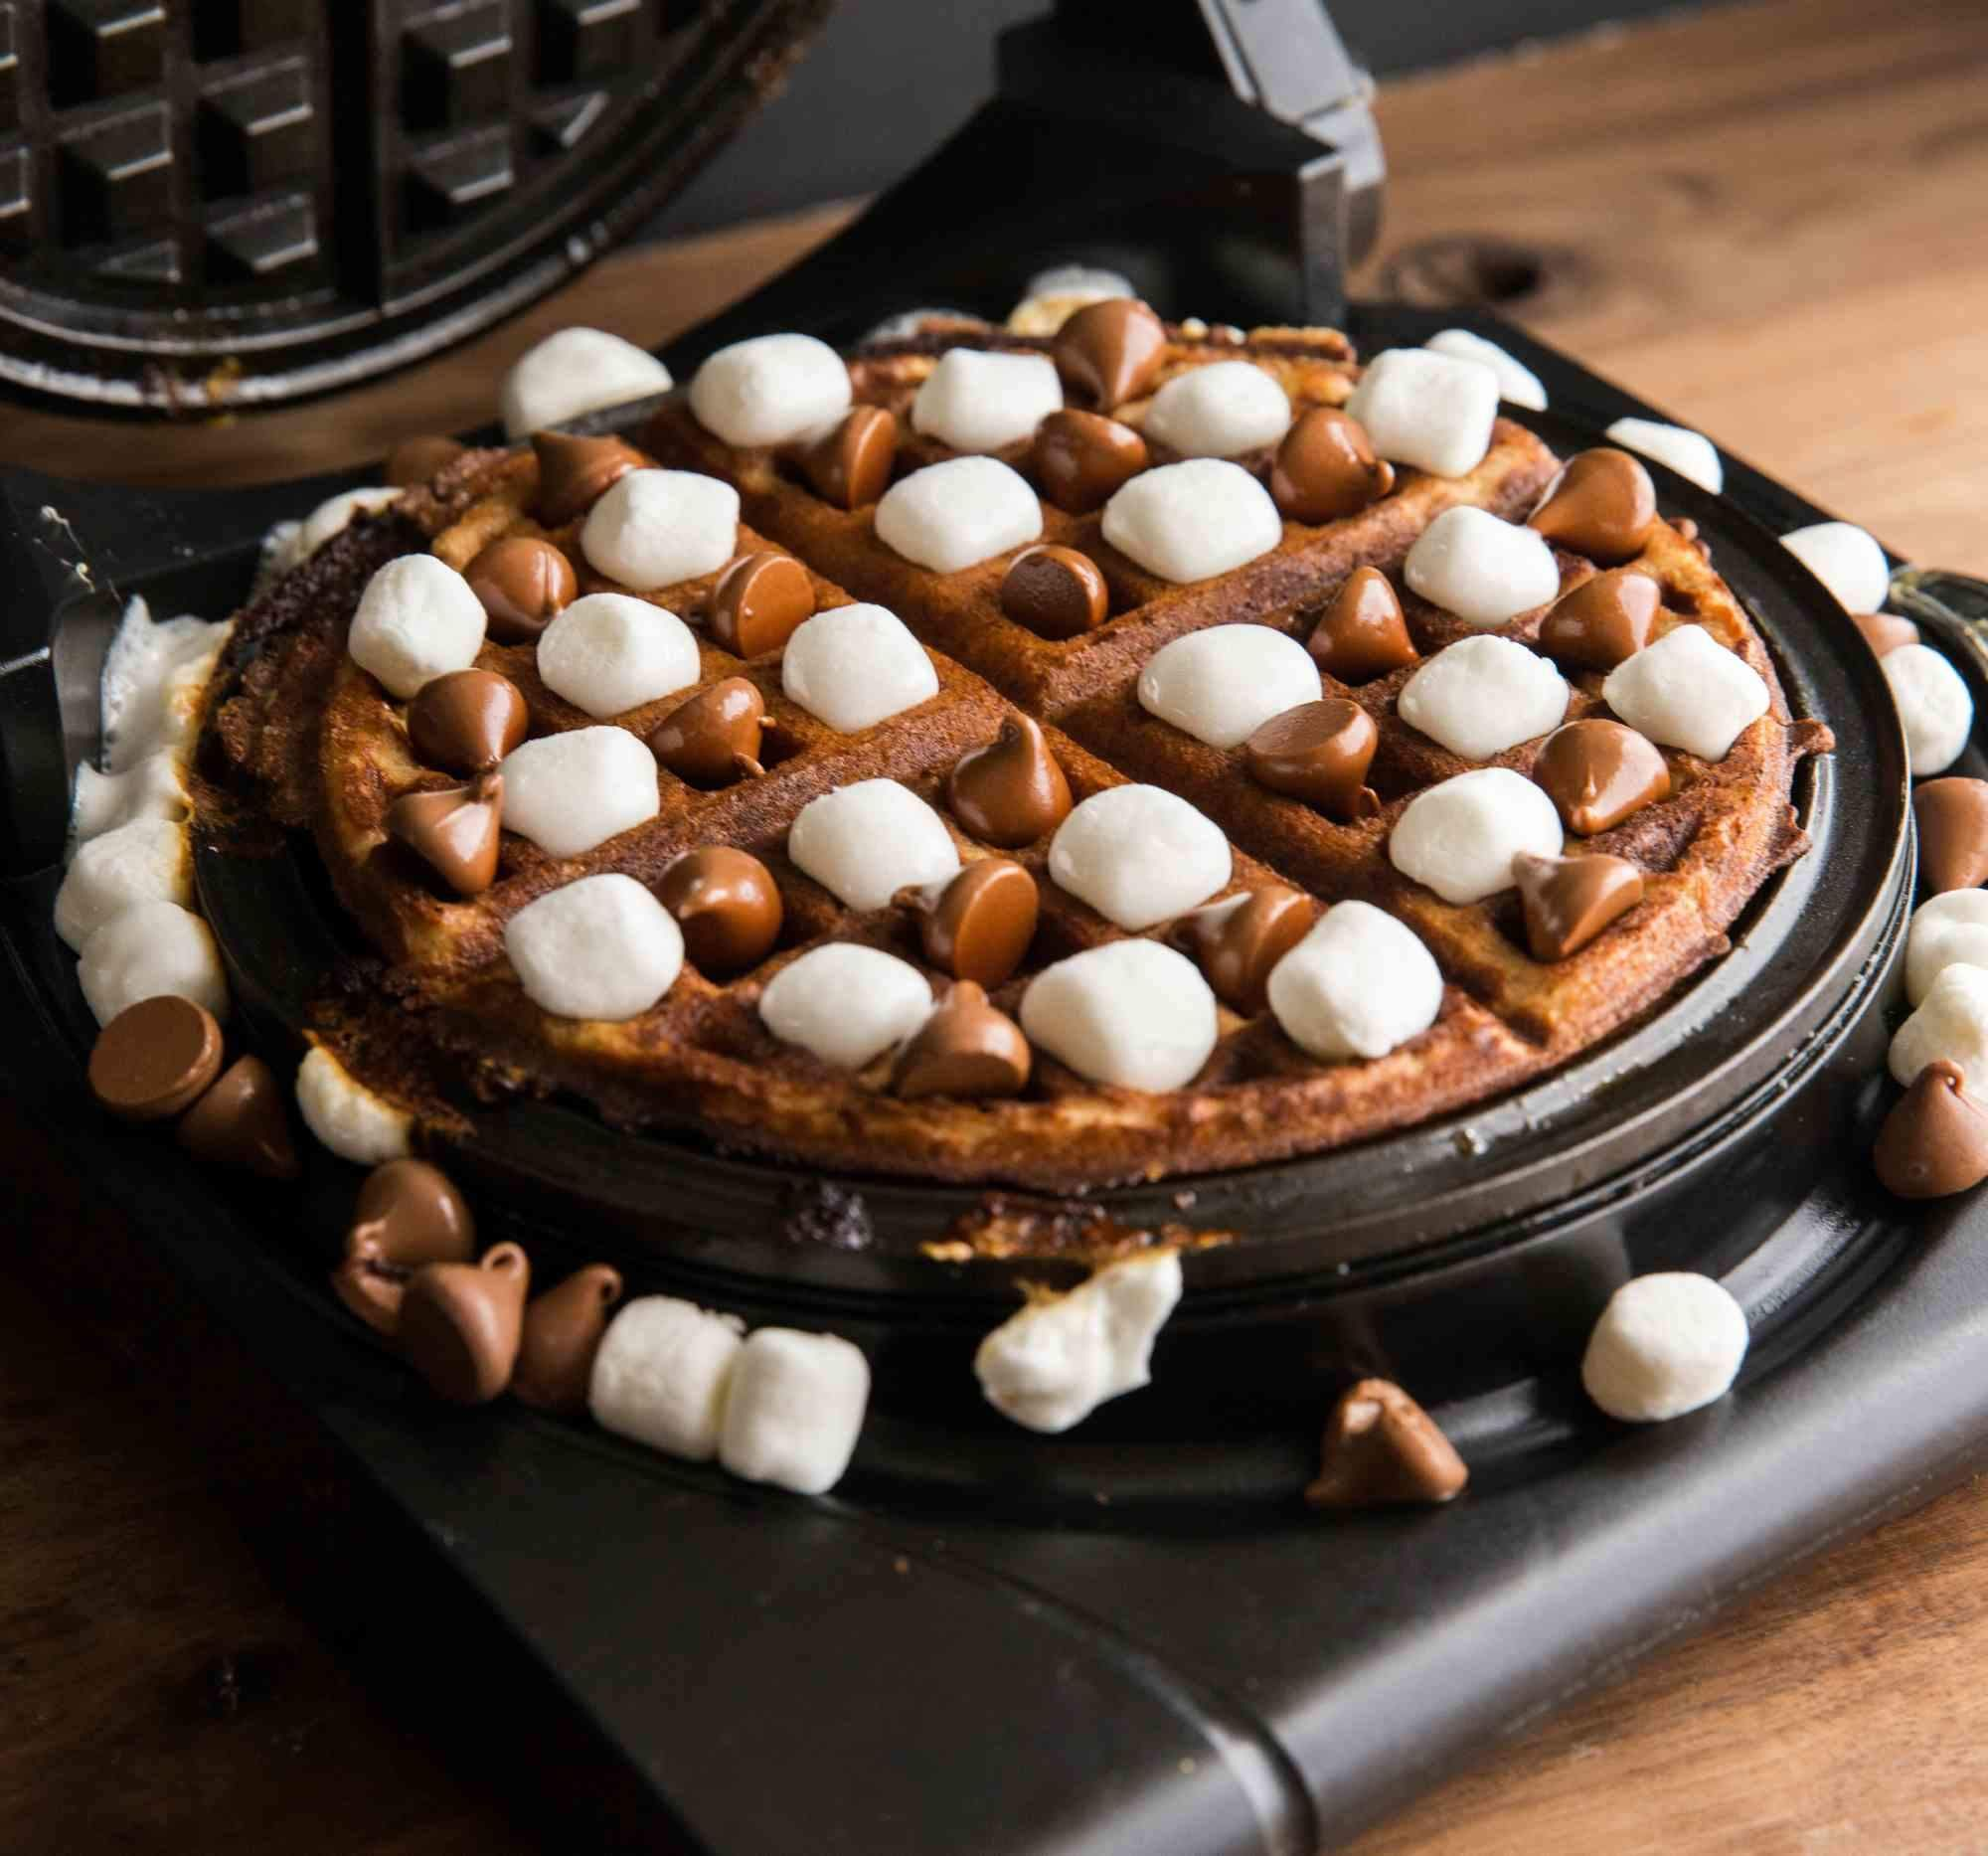 Waffle S'mores Taste Just Like the Real Deal, but Are So Much Easier